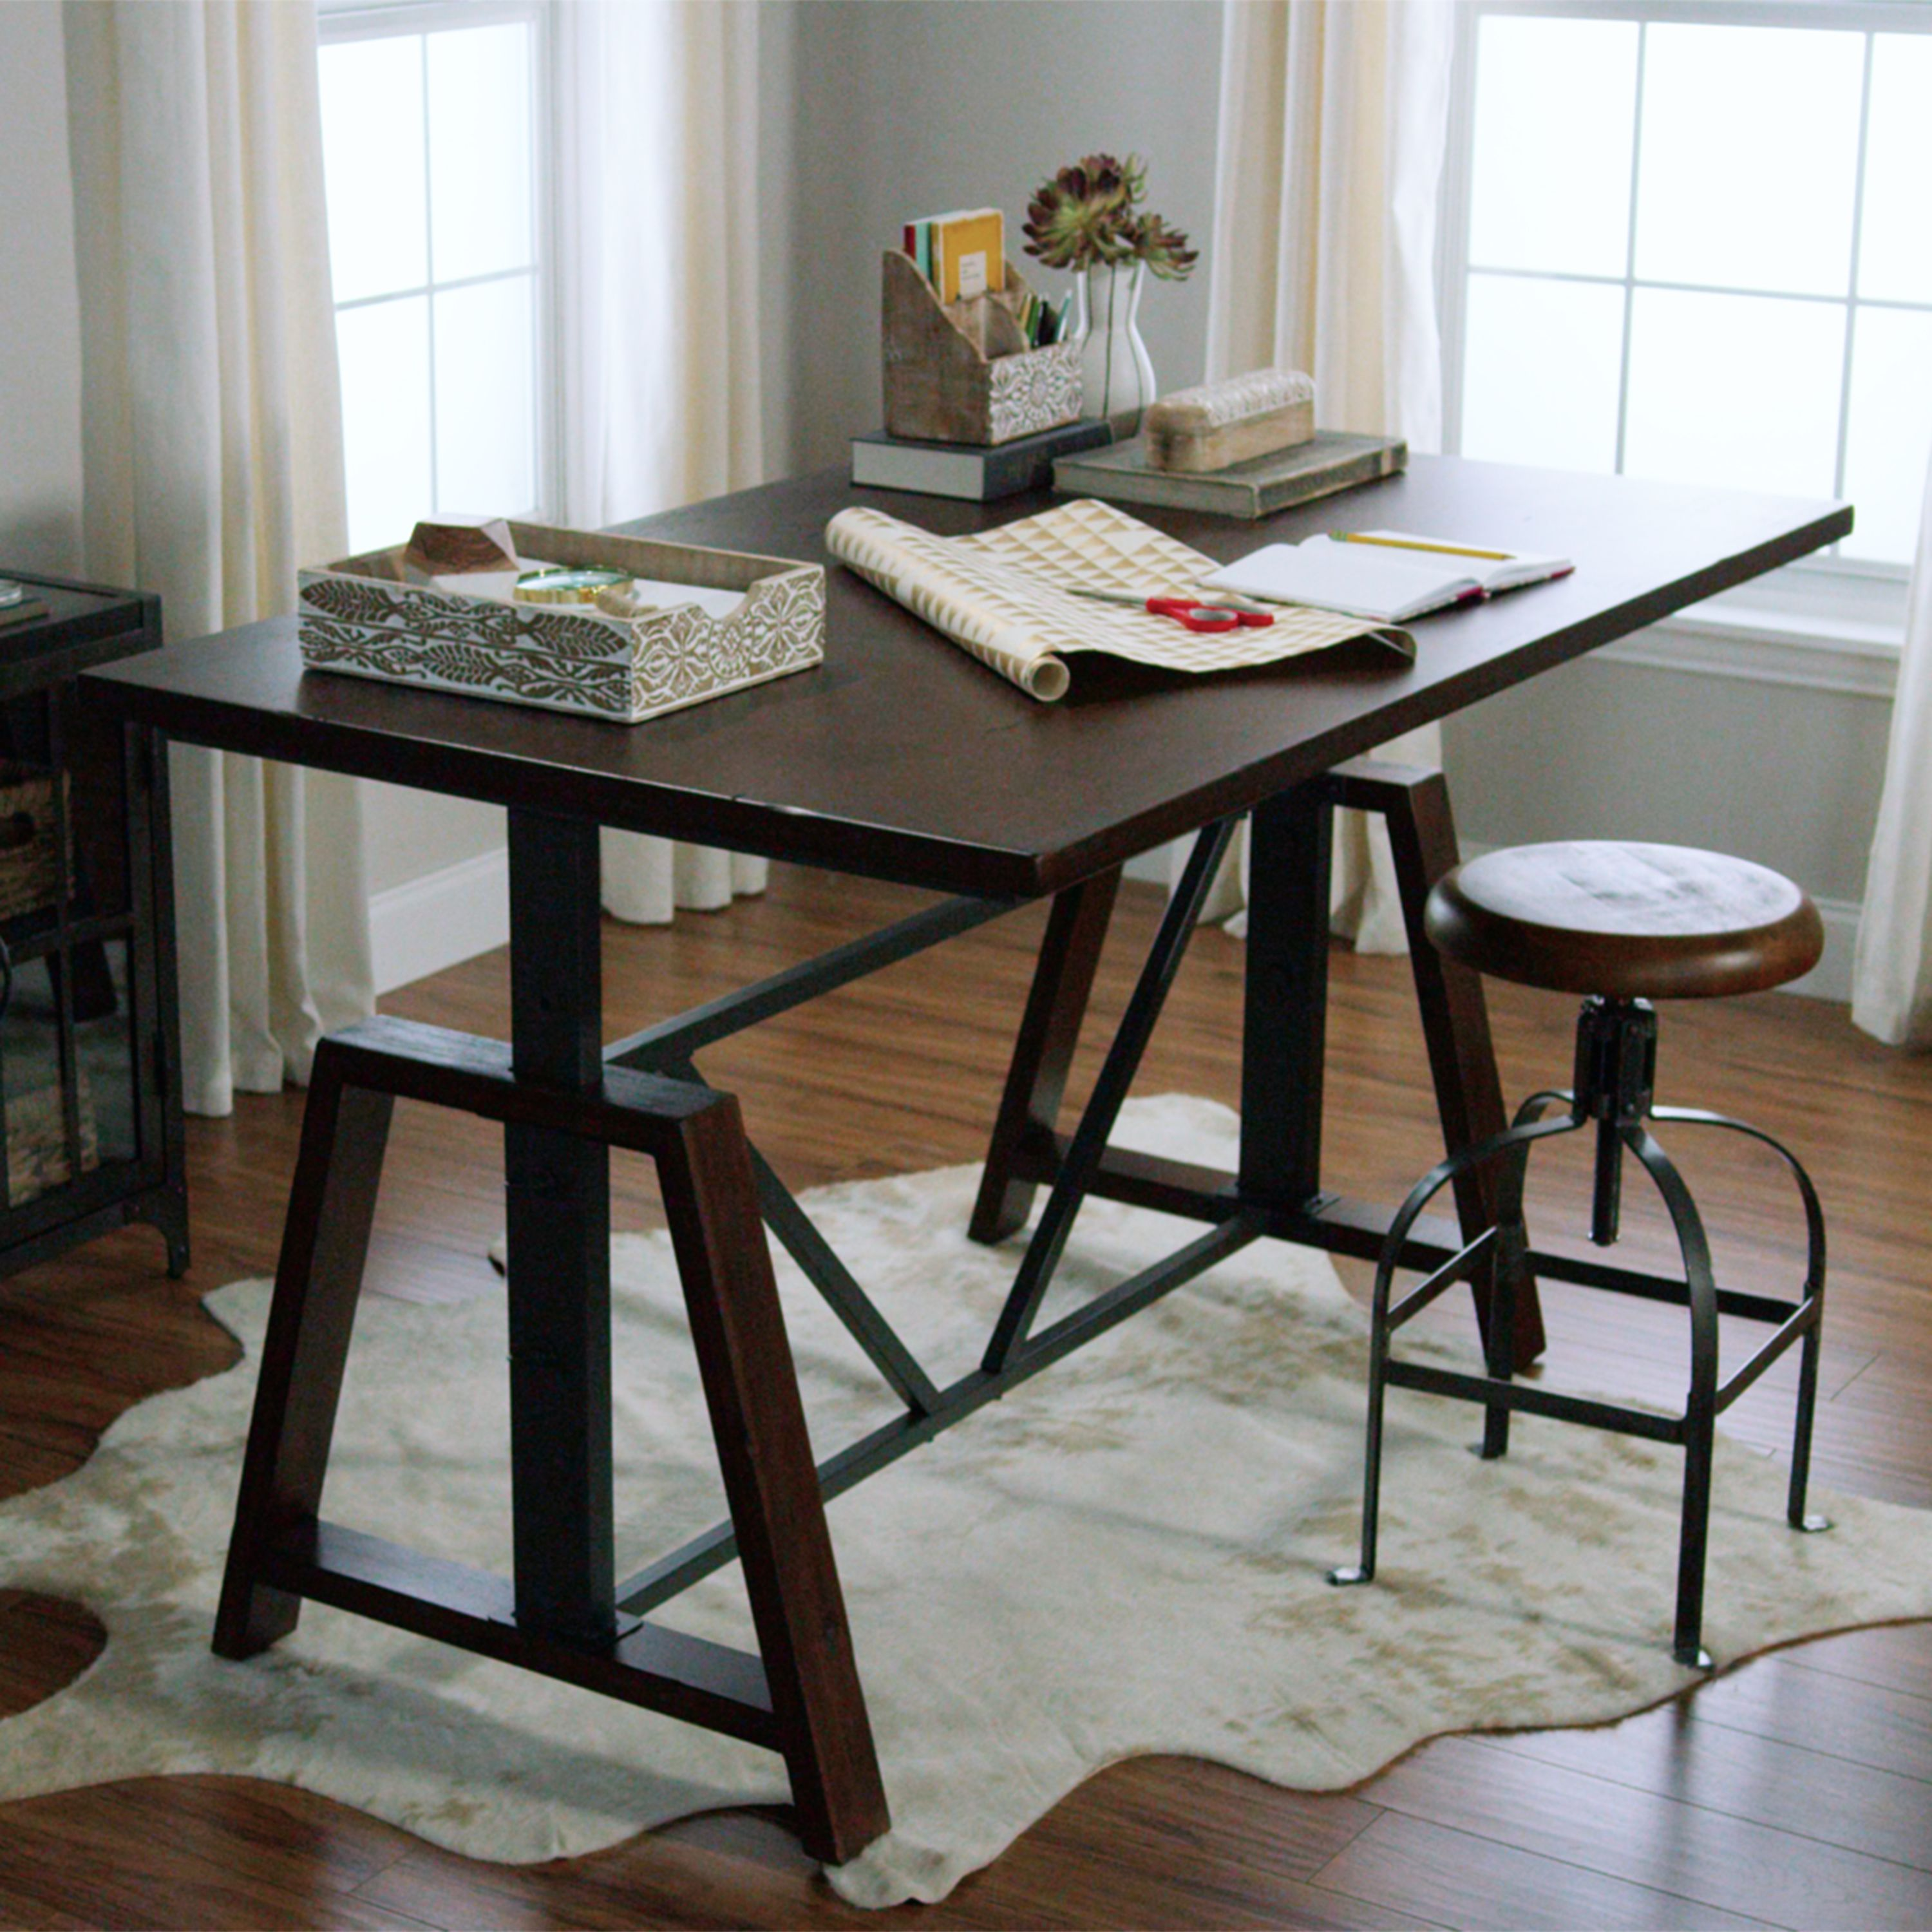 With An Amply Sized Wooden Surface, Our Adjustable Height Table Is A  Multifunctional Workhorse